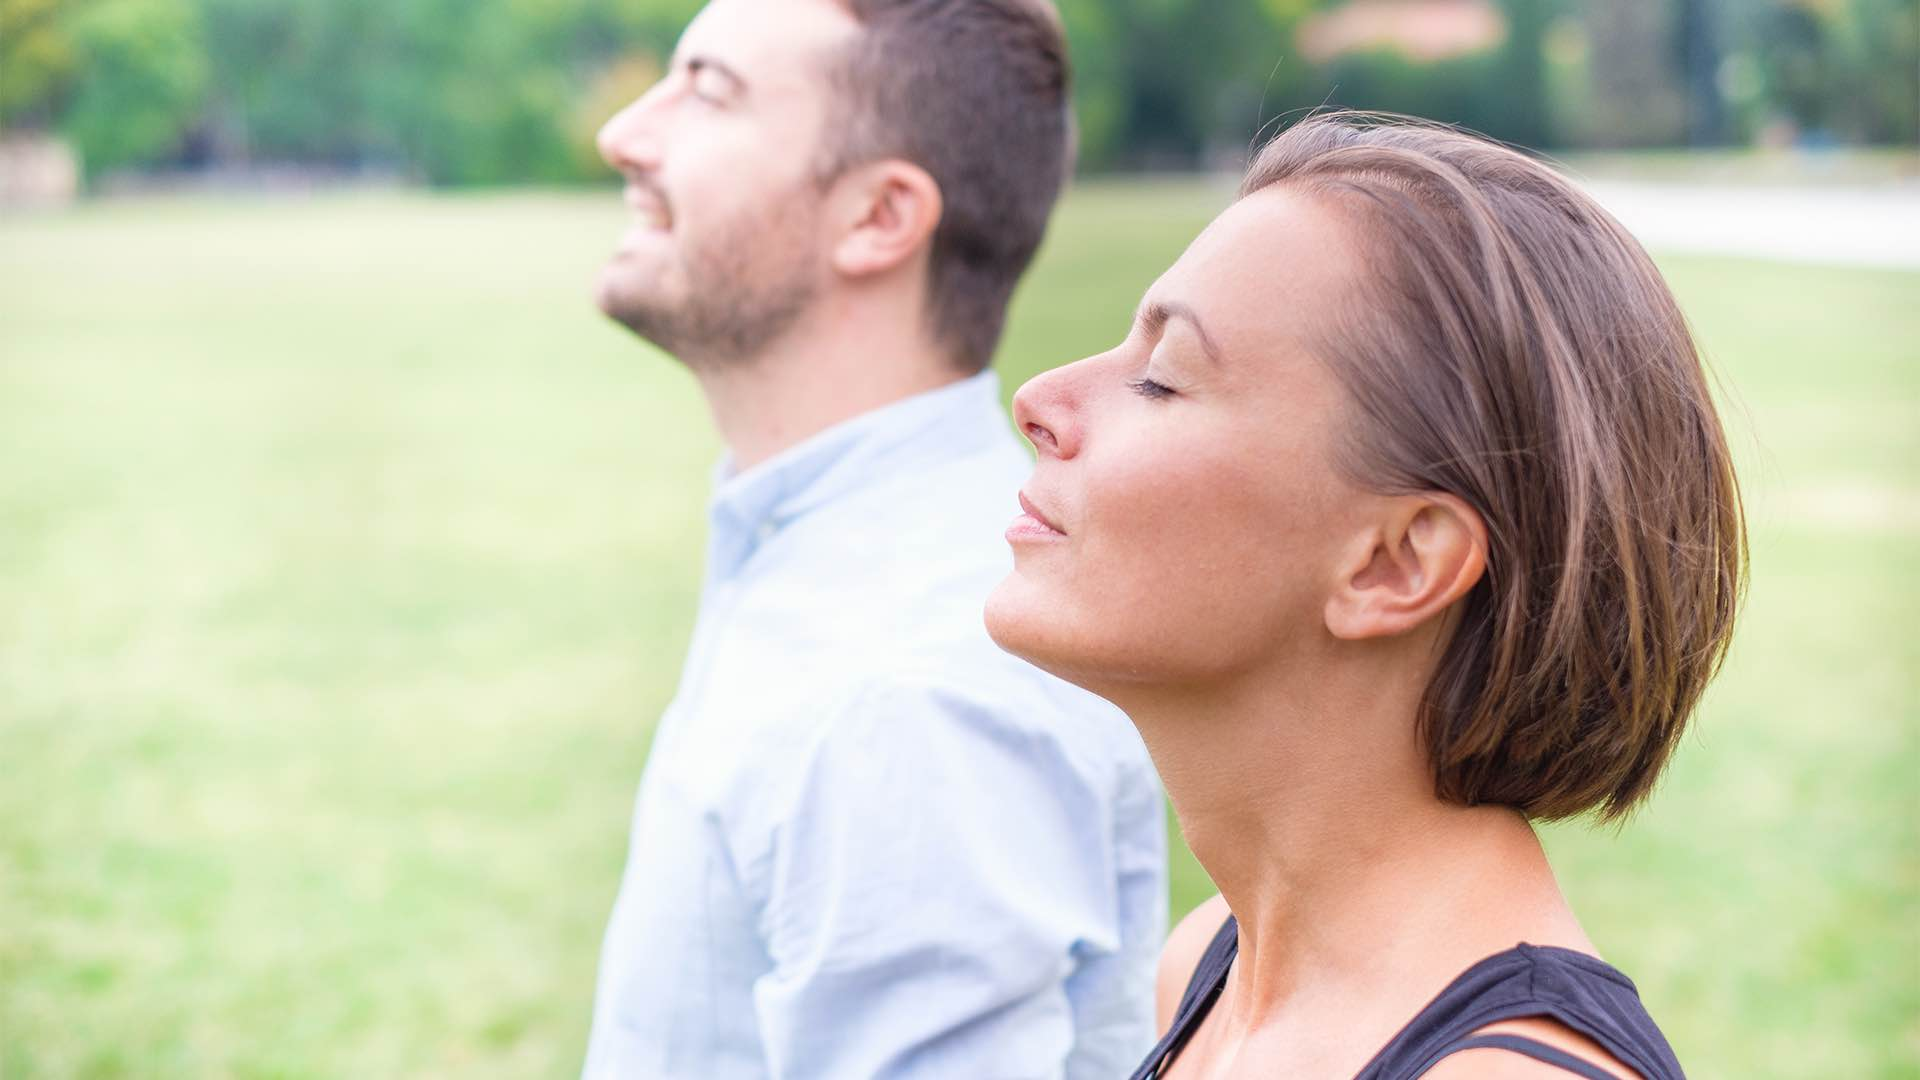 breathing techniques to try